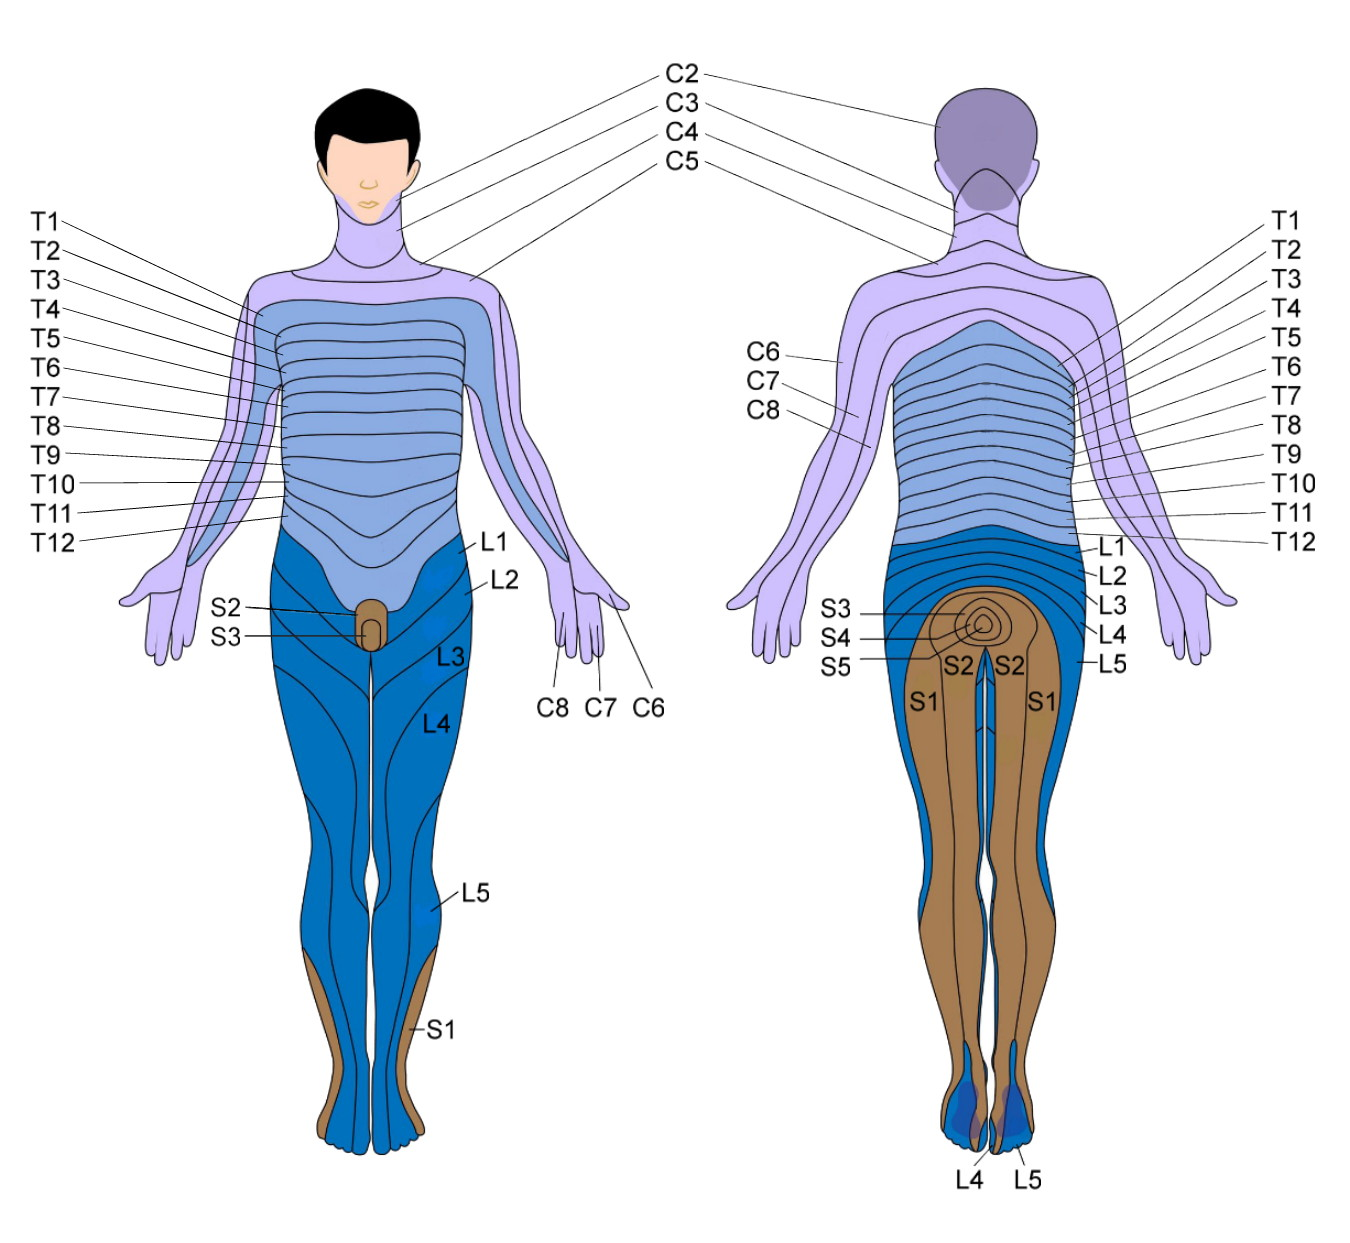 Dermatome_map, area of skin with single spinal nerve, nerve compression